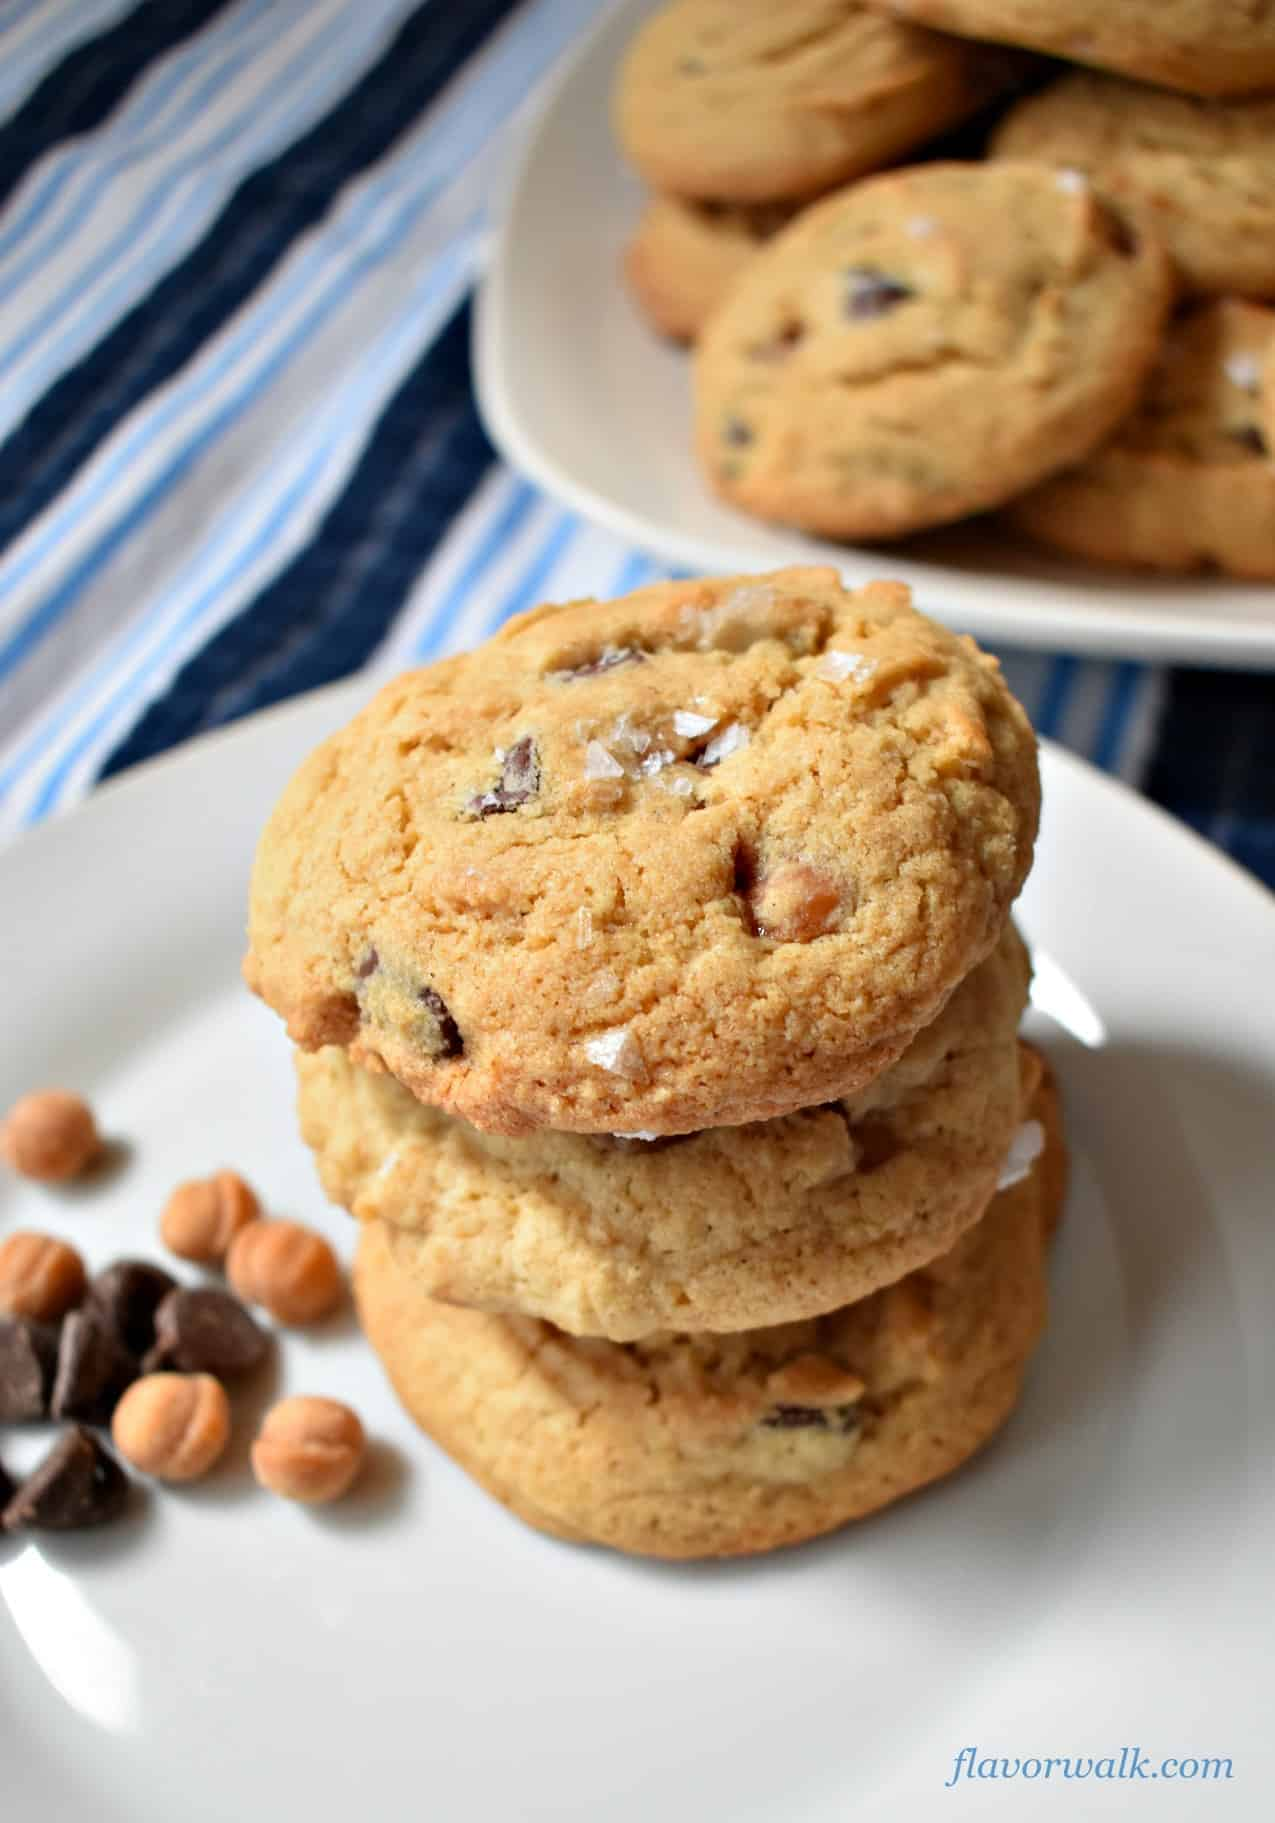 Salted Caramel Chocolate Chip Cookies on a white plate | Flavor Walk